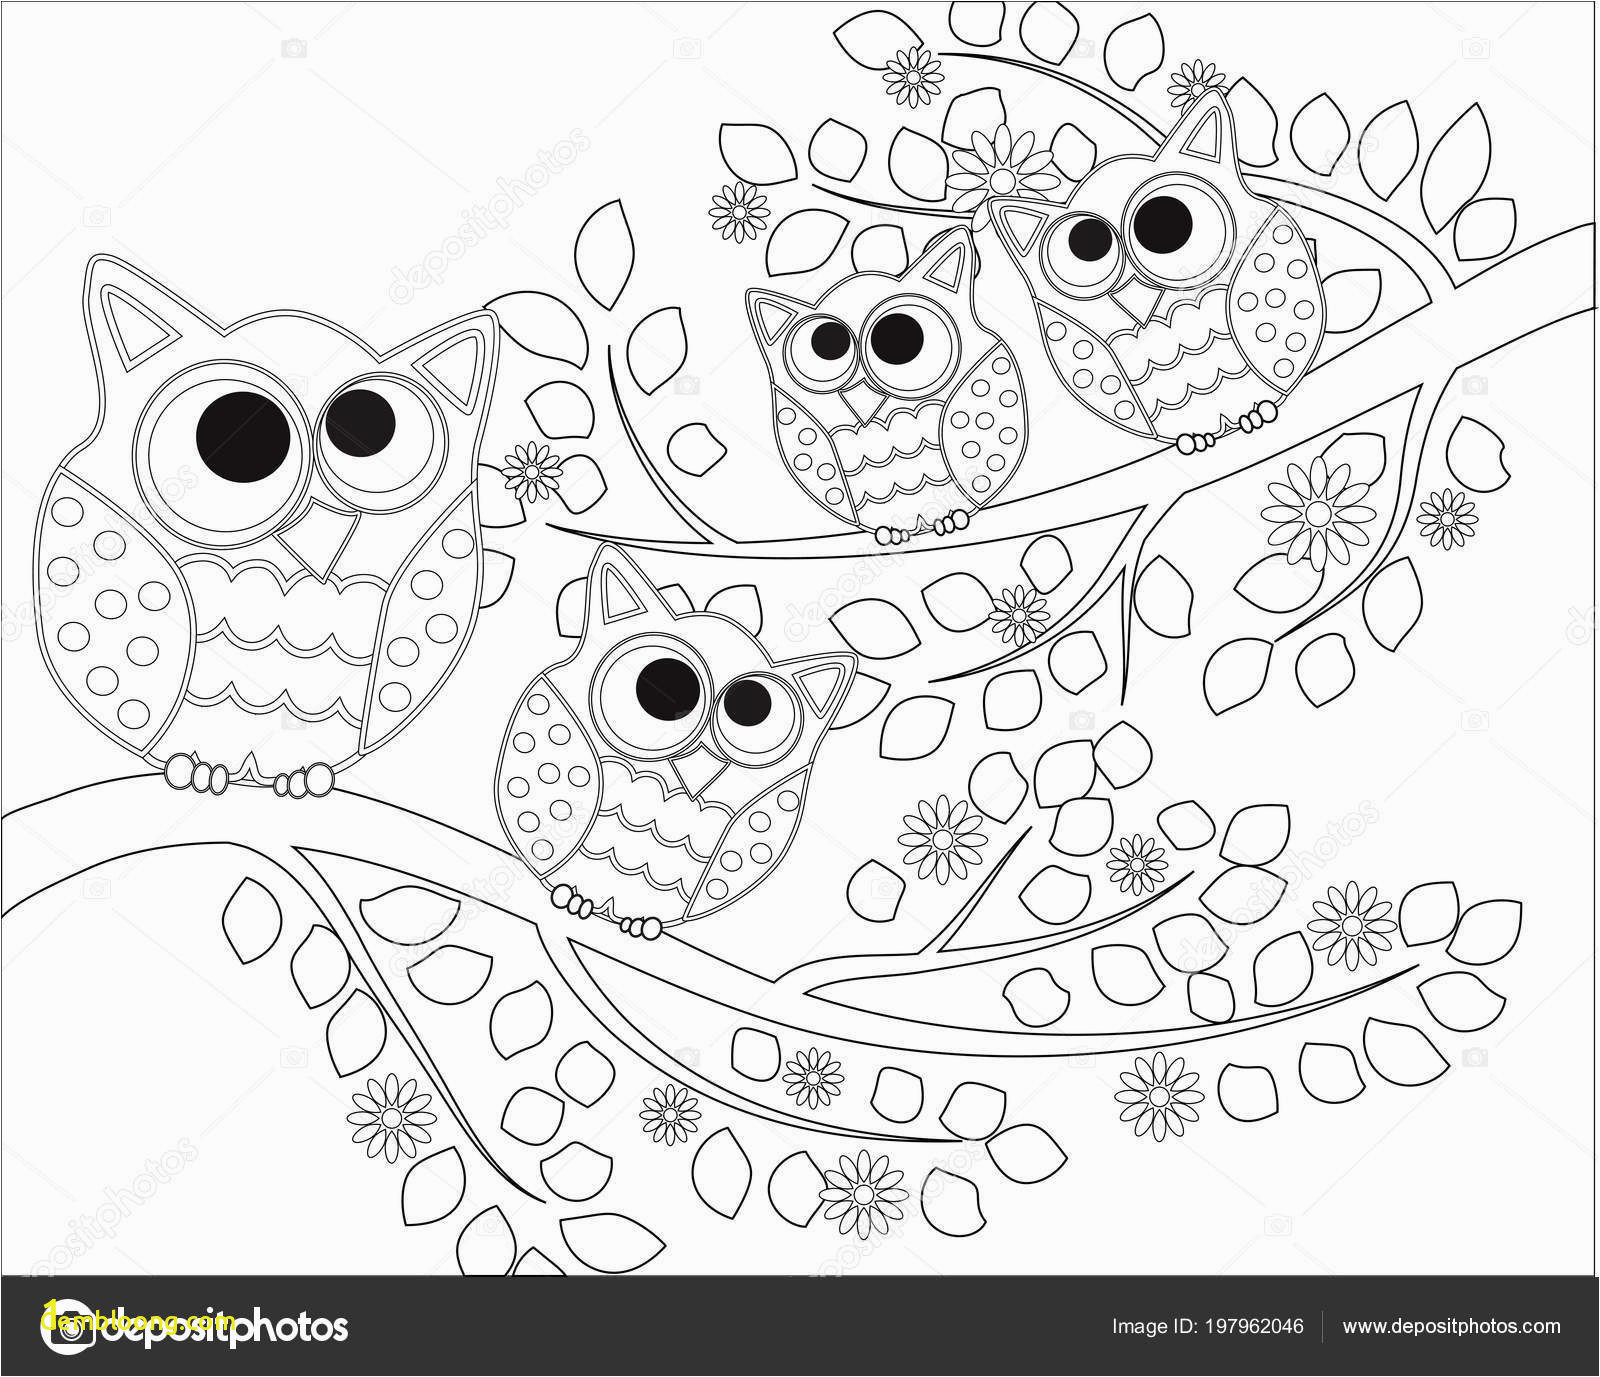 cutel coloring pages printable to print for kids free adults